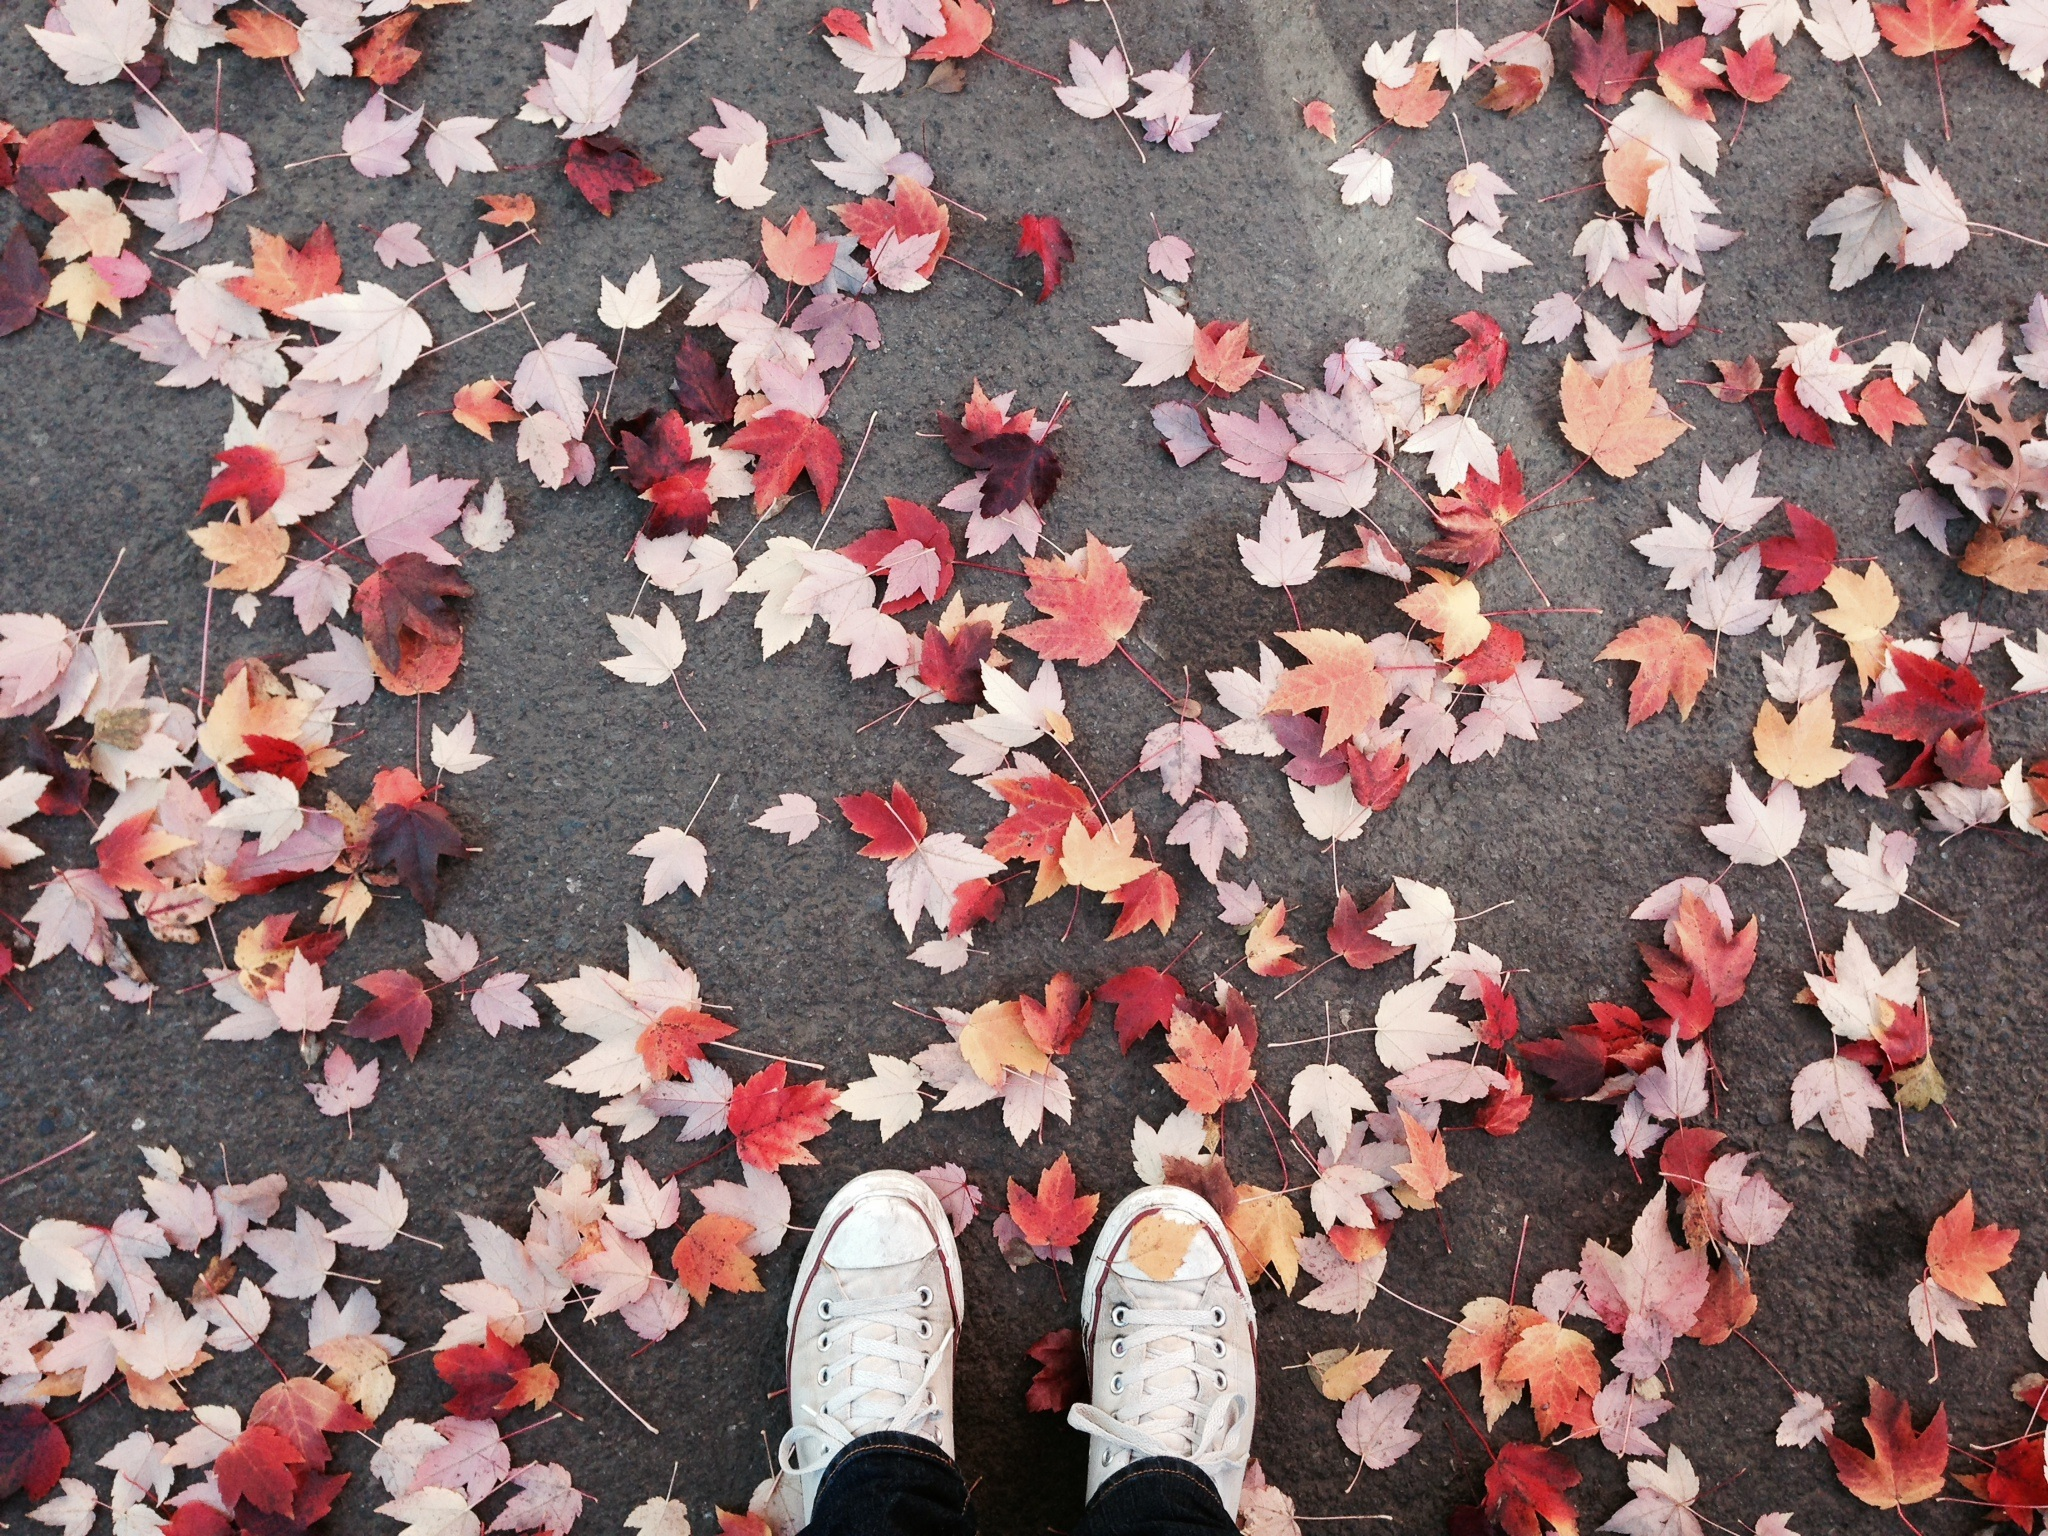 Charming 14 Inspirational Quotes About Changing Seasons To Get You Ready For Fall